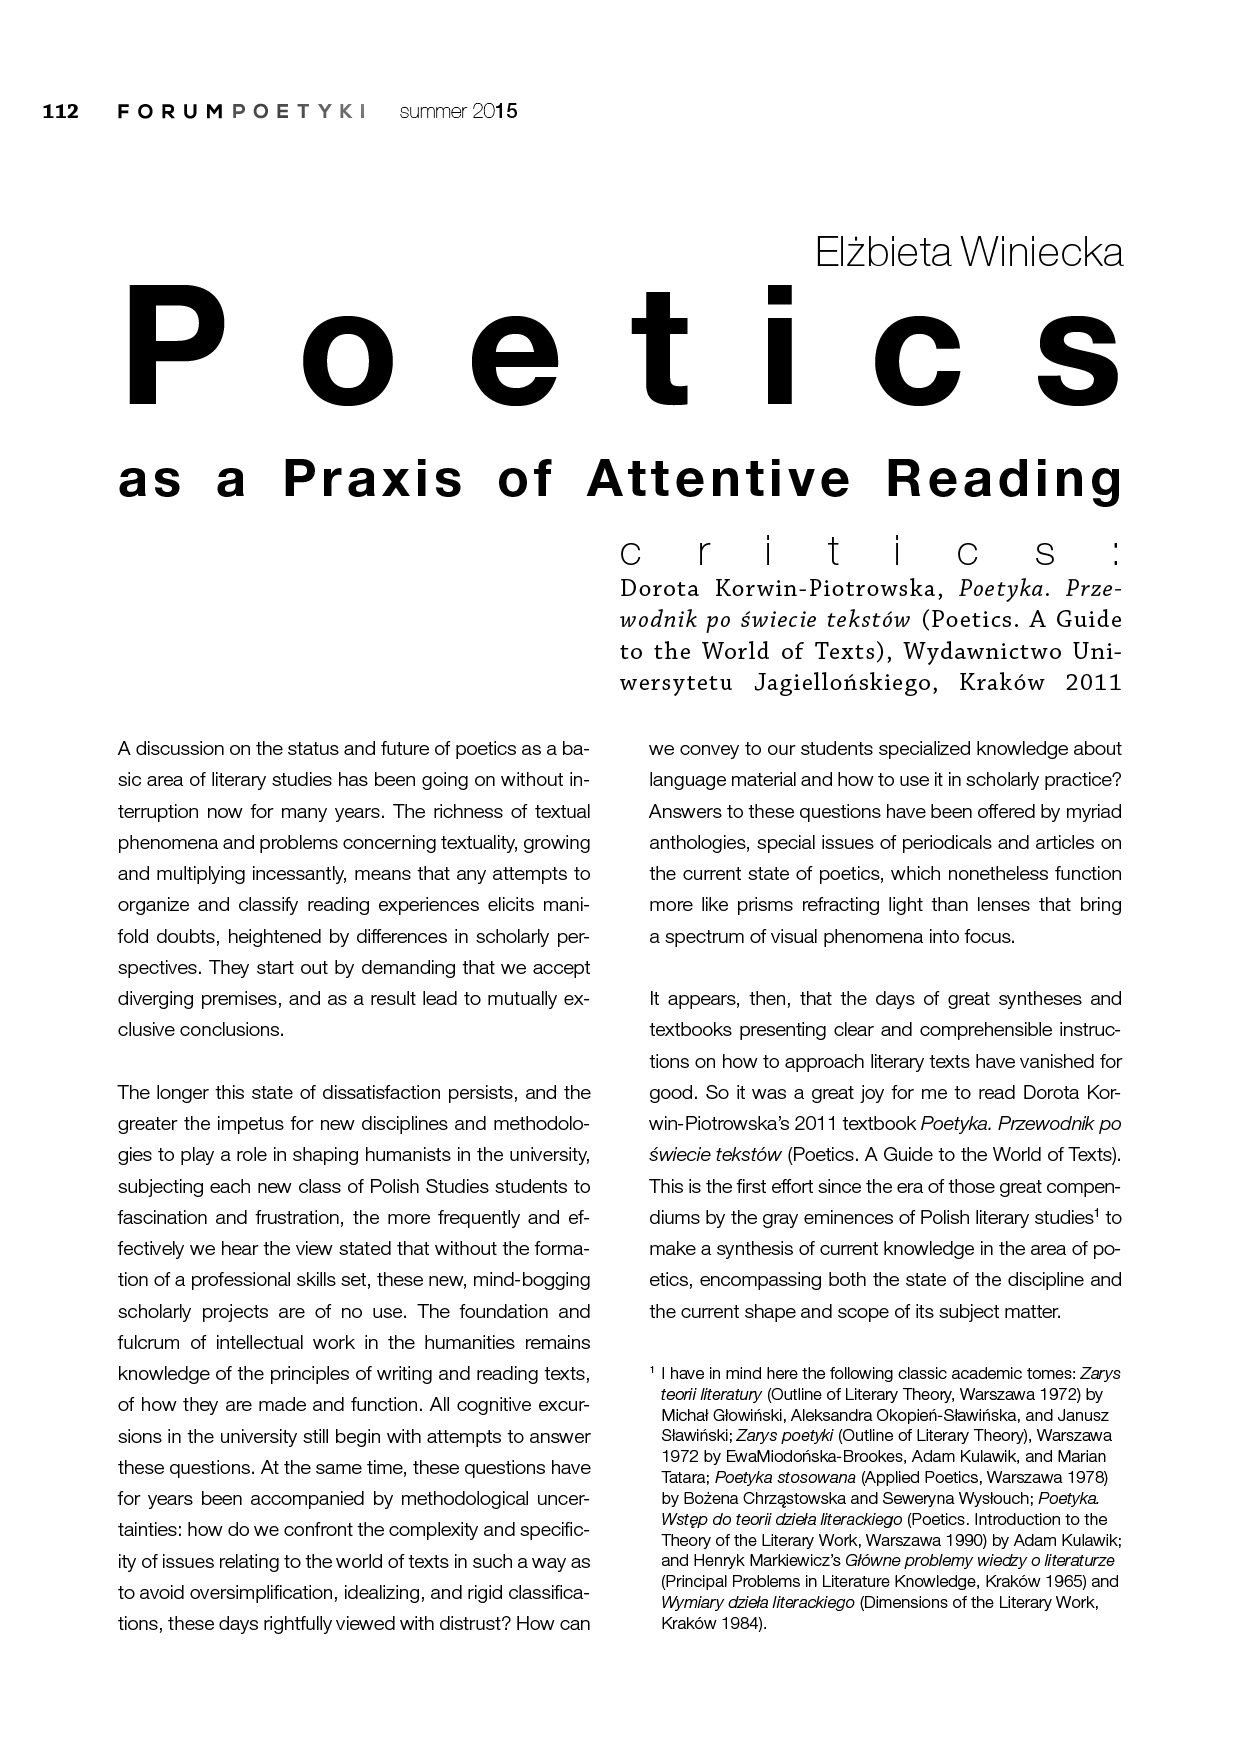 Poetics as Praxis of Attentive Reading